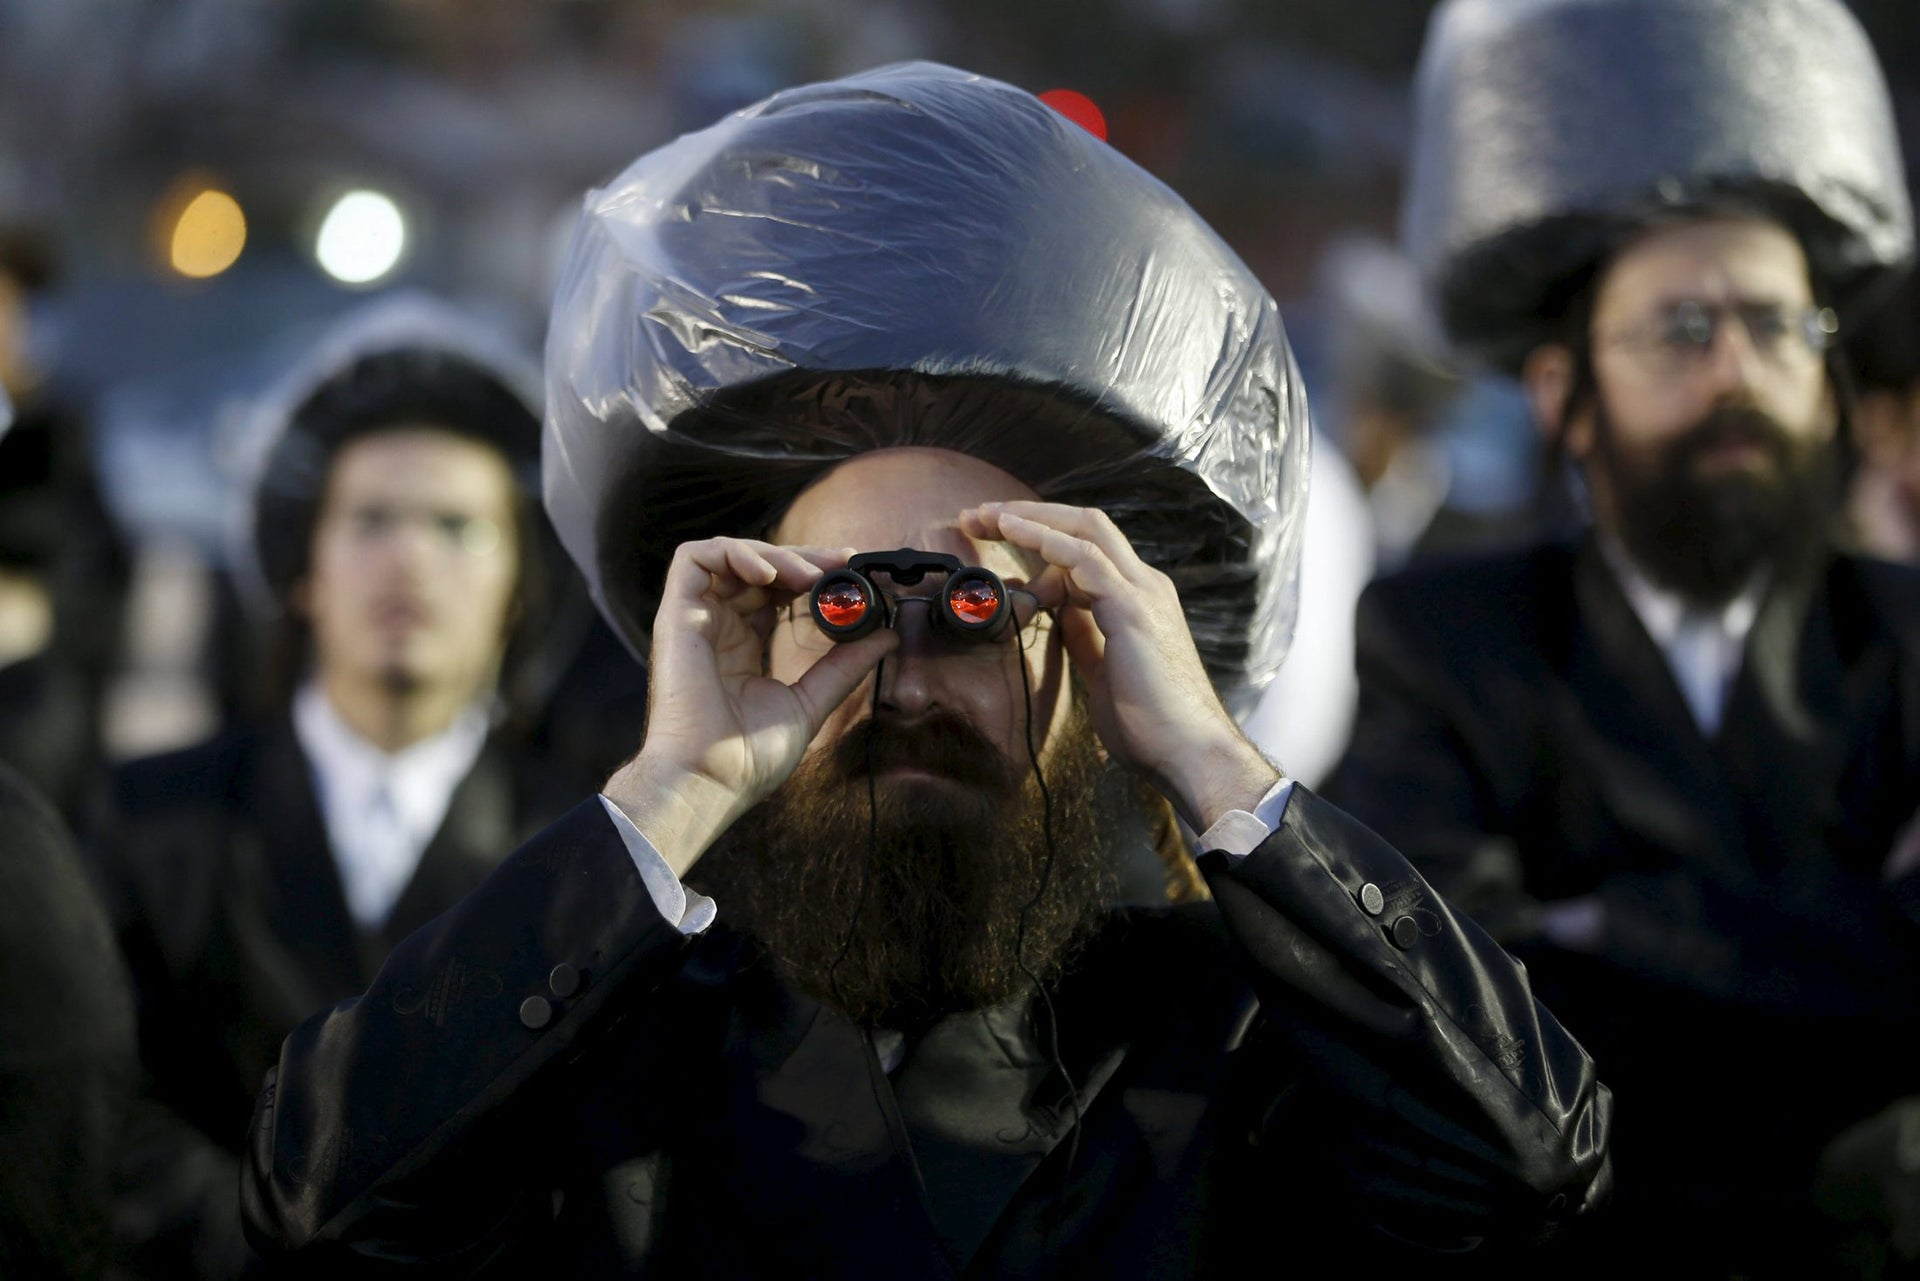 An ultra-Orthodox Jewish man uses binoculars during the wedding ceremony the grandson of Rabbi Yosef Dov Moshe Halberstam, religious leader of the Sanz Hasidic dynasty and the granddaughter of the religious leader of Toldos Avraham Yitzchak Hasidic dynasty, in Netanya, Israel March 15, 2016.